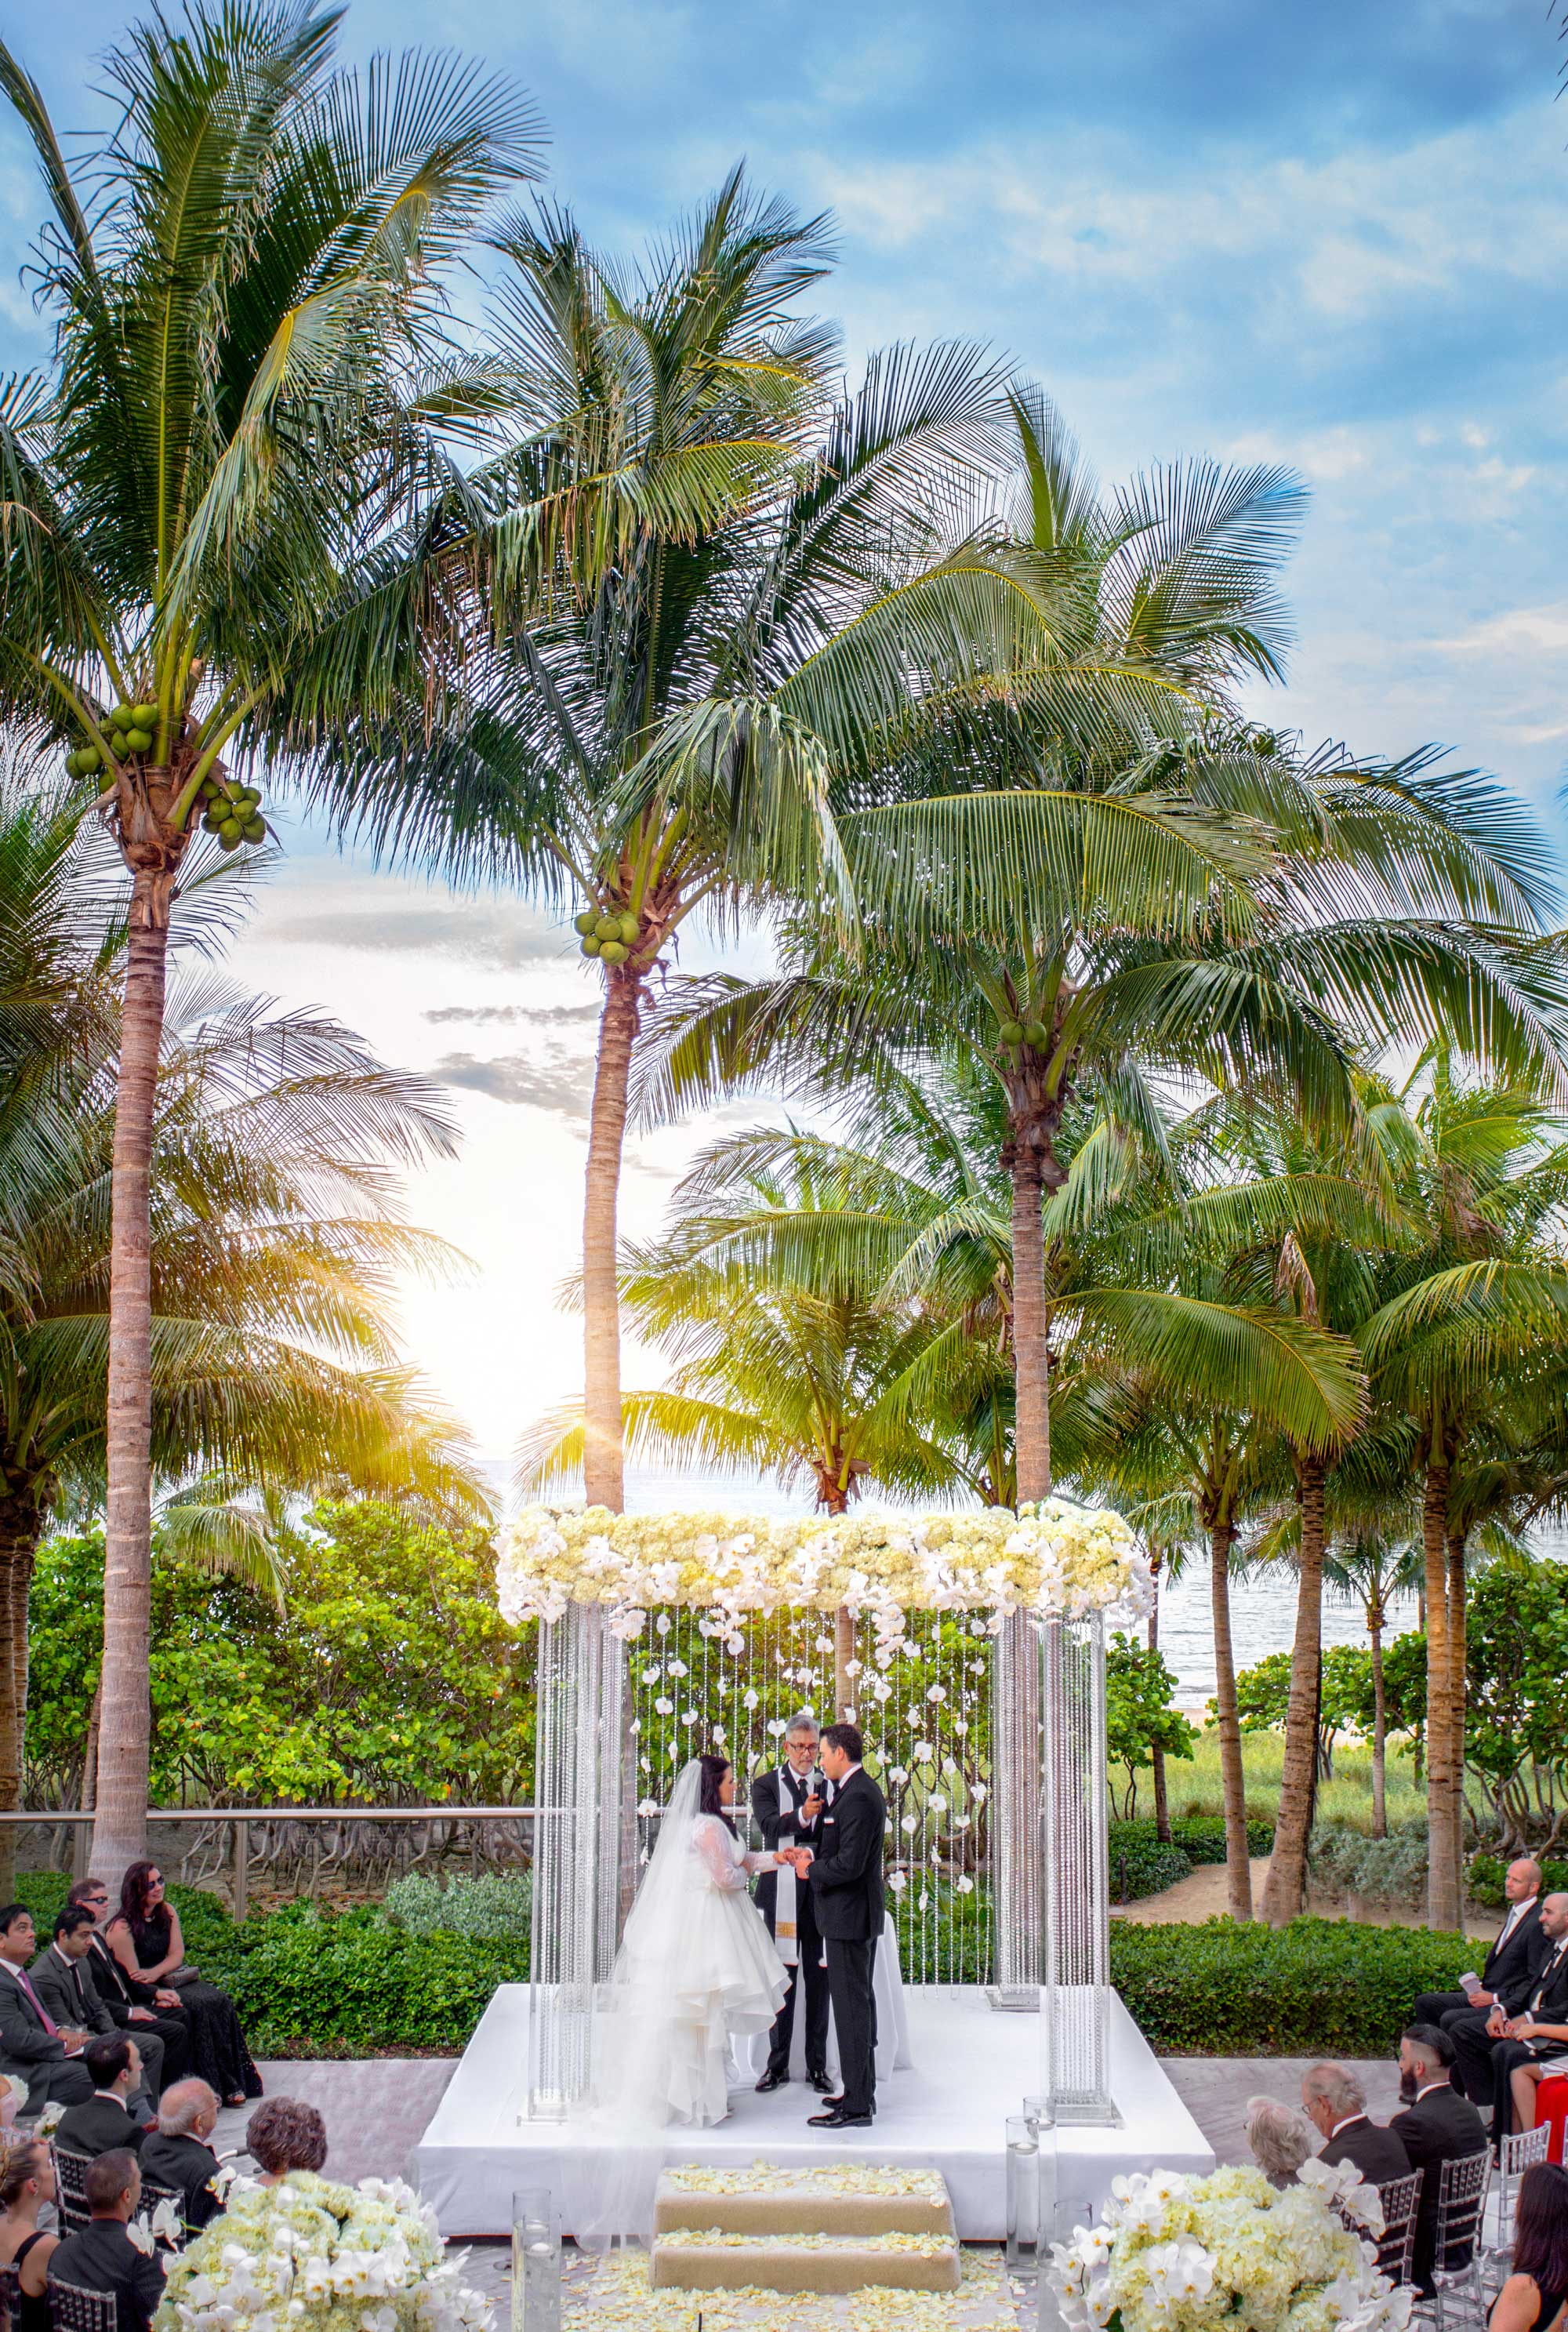 Inside Weddings Spring 2017 issue outdoor wedding ceremony in Florida Amanda Ruisi bride Kleinfeld dress